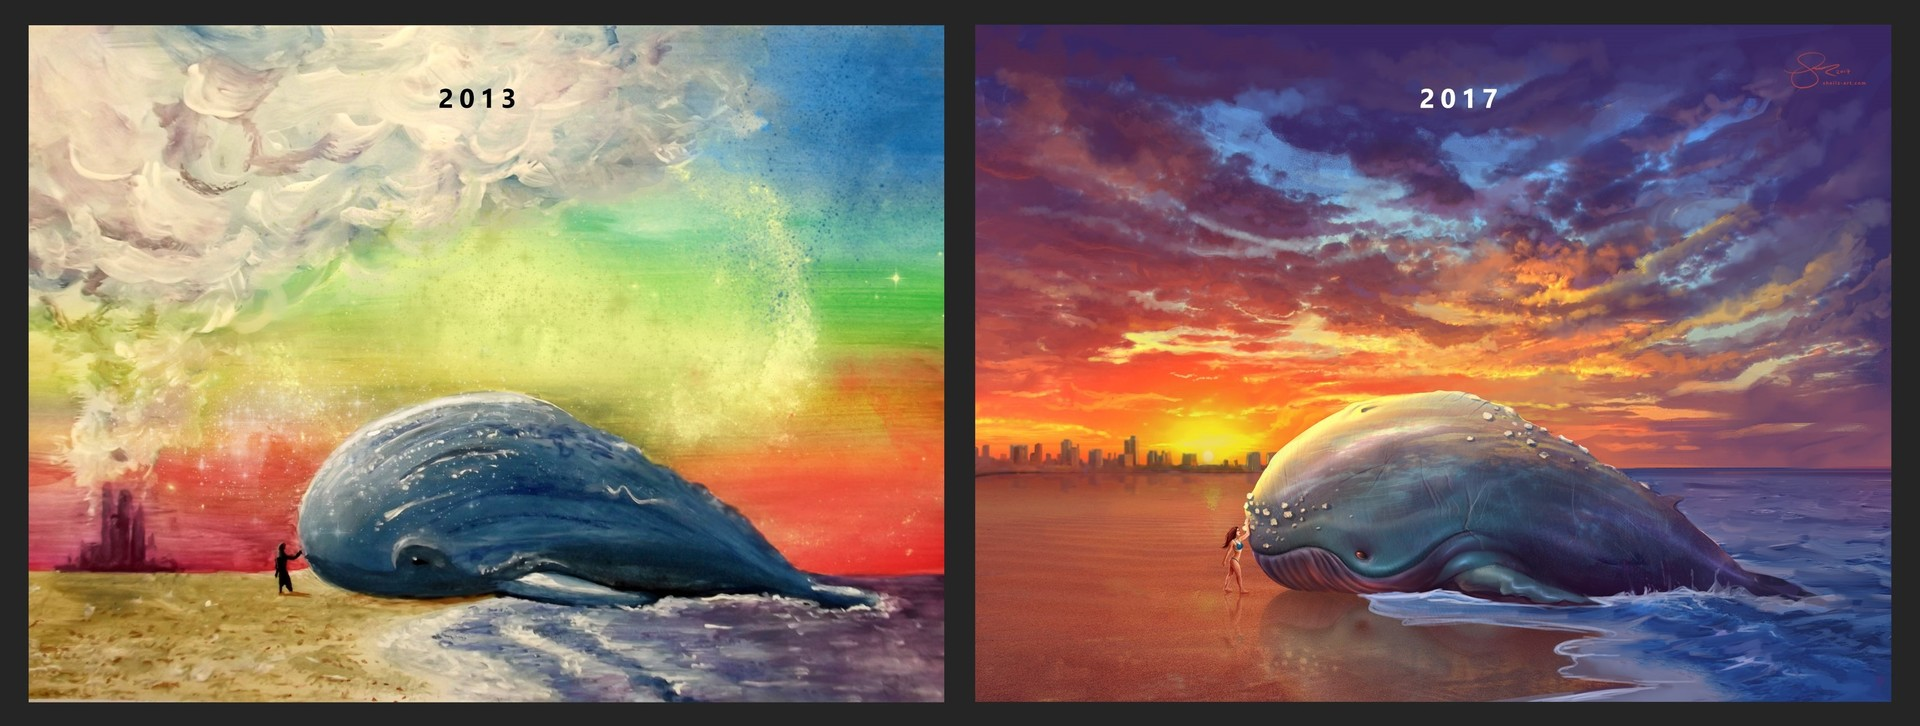 Shellz art beached whale before and after